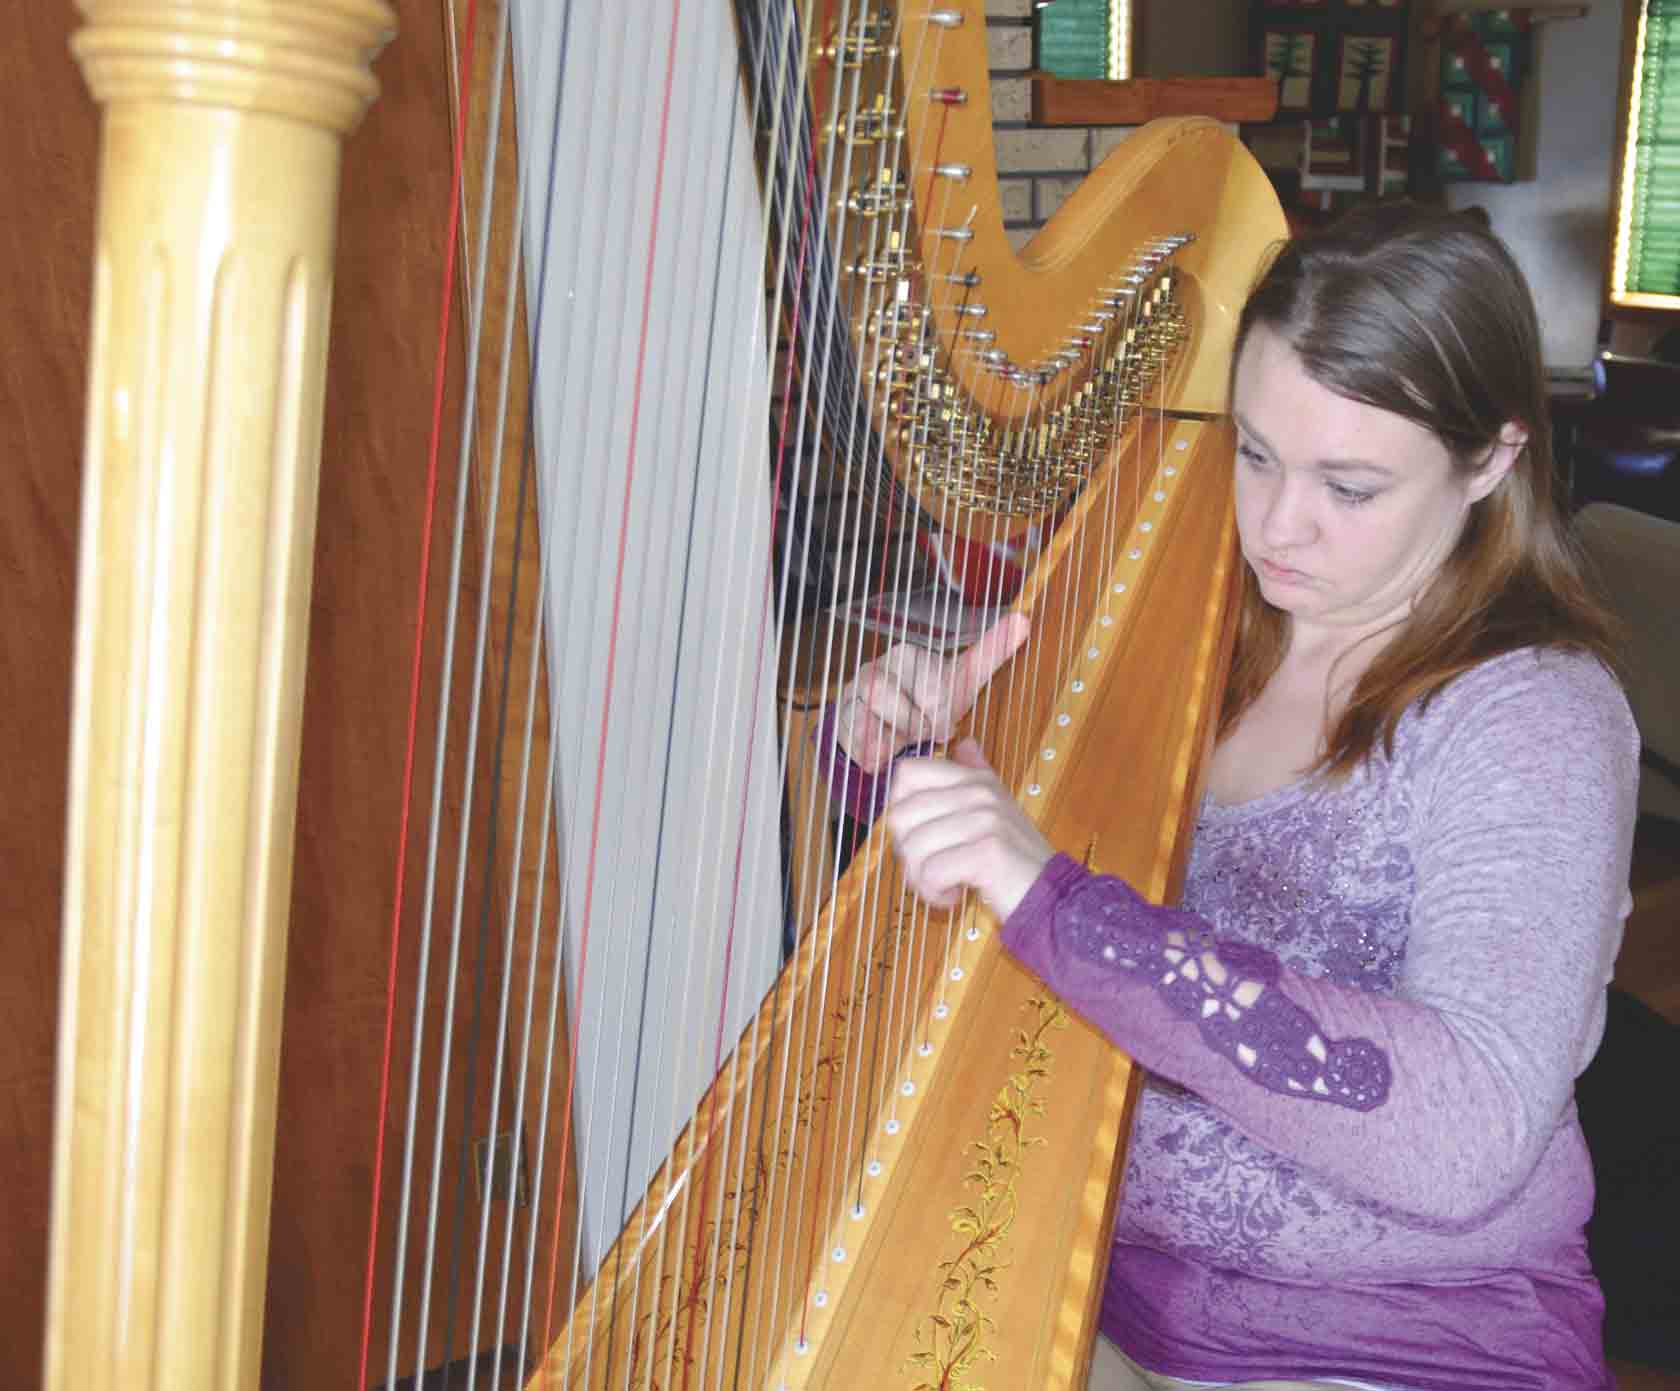 With several methods for learning the harp, Leisl Schutte learned the Suzuki Method, which is based on memorization and listening. (Chris DeBack photos) 	 	 	Local harpist inspired by grandmother's painting  By Chris Deback	cdeback@...